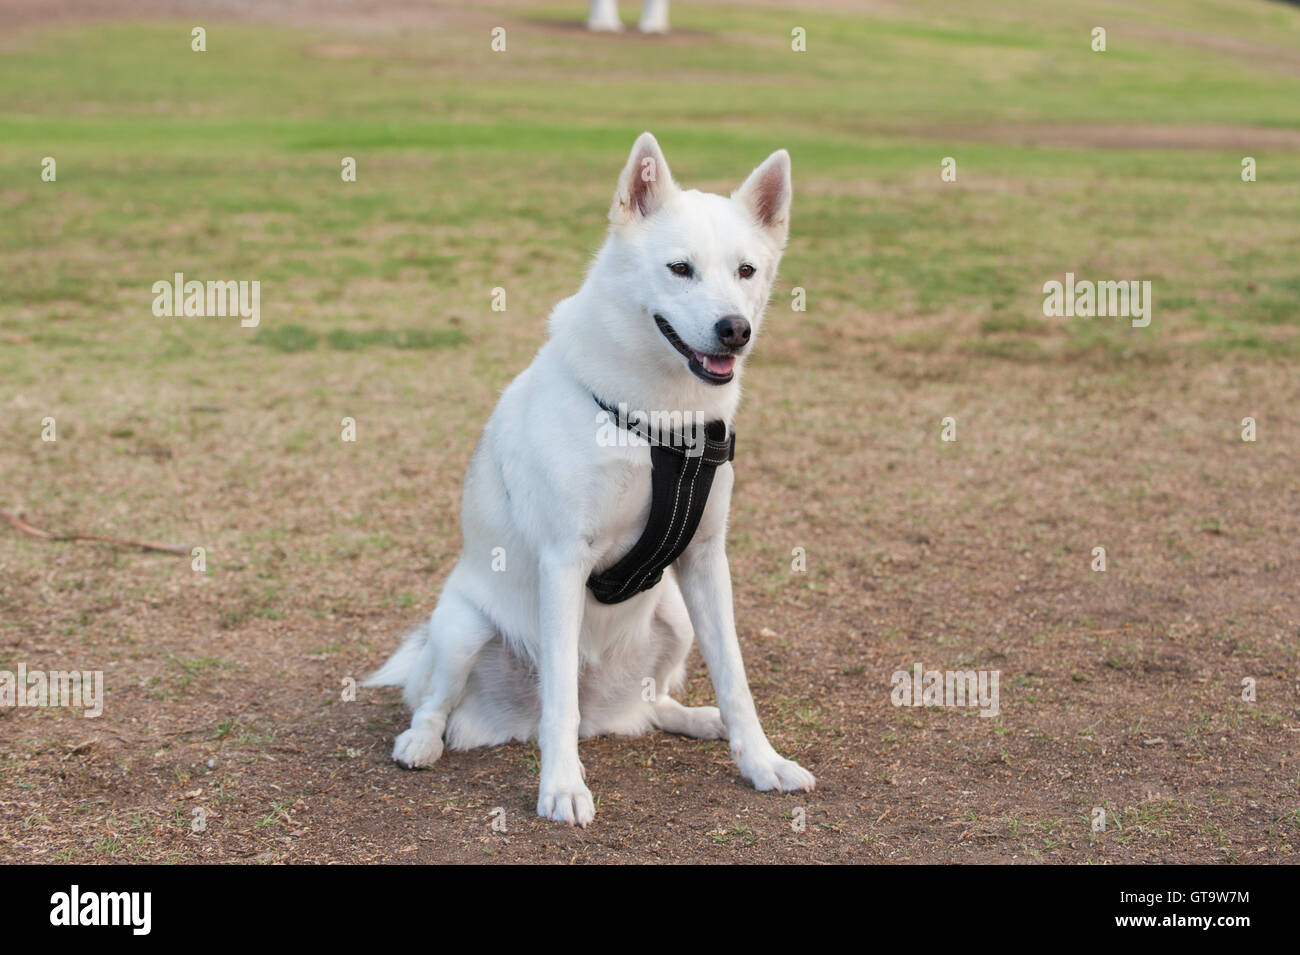 White Siberian Husky Dog Sitting In Grass At Park With Interest